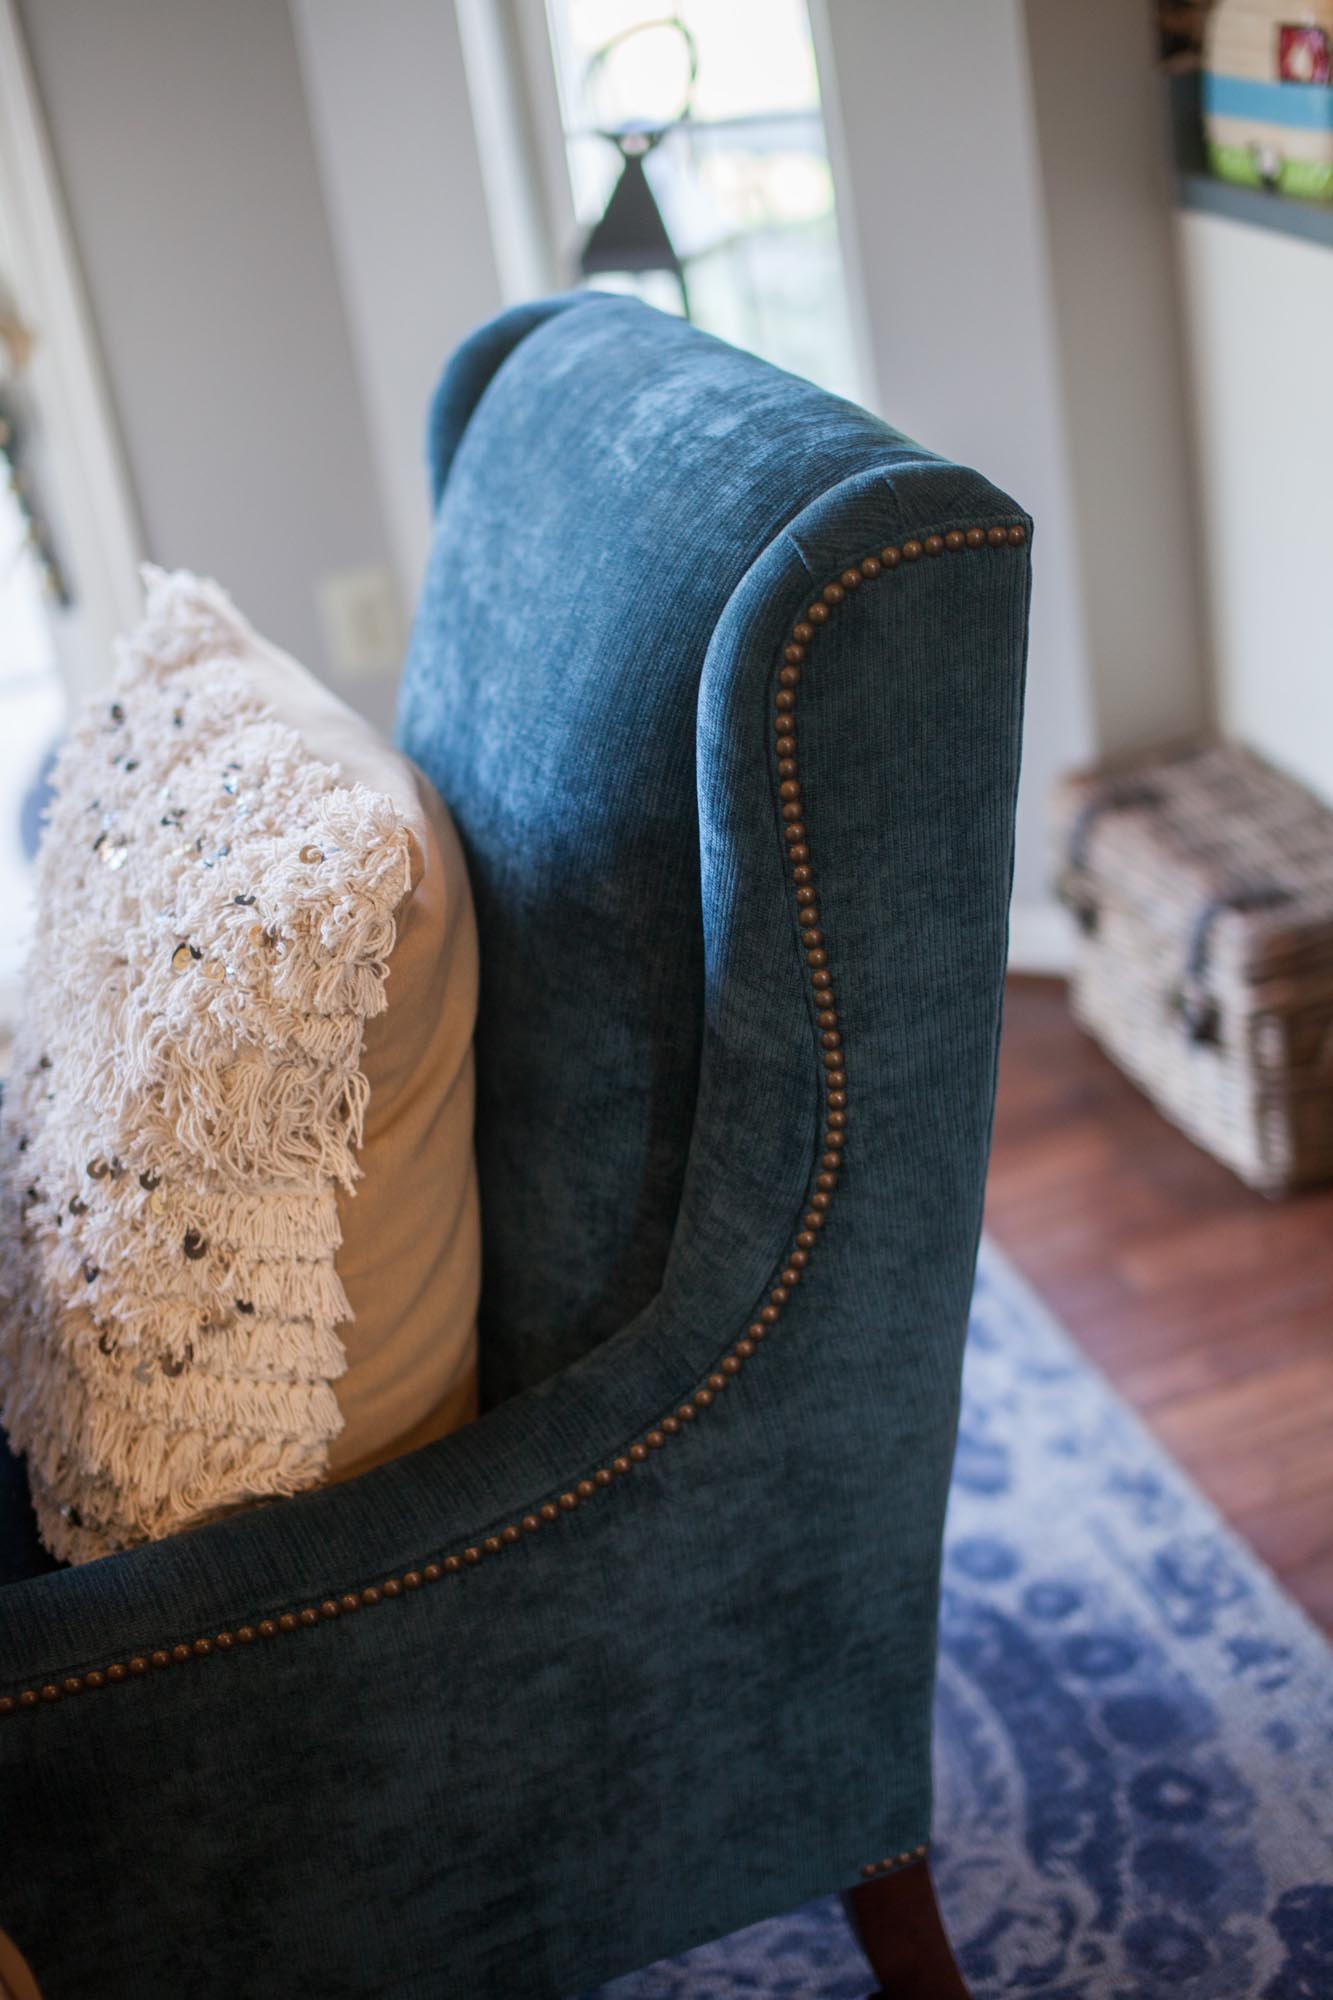 Blue stuffed chair with beige colored stuffed pillow